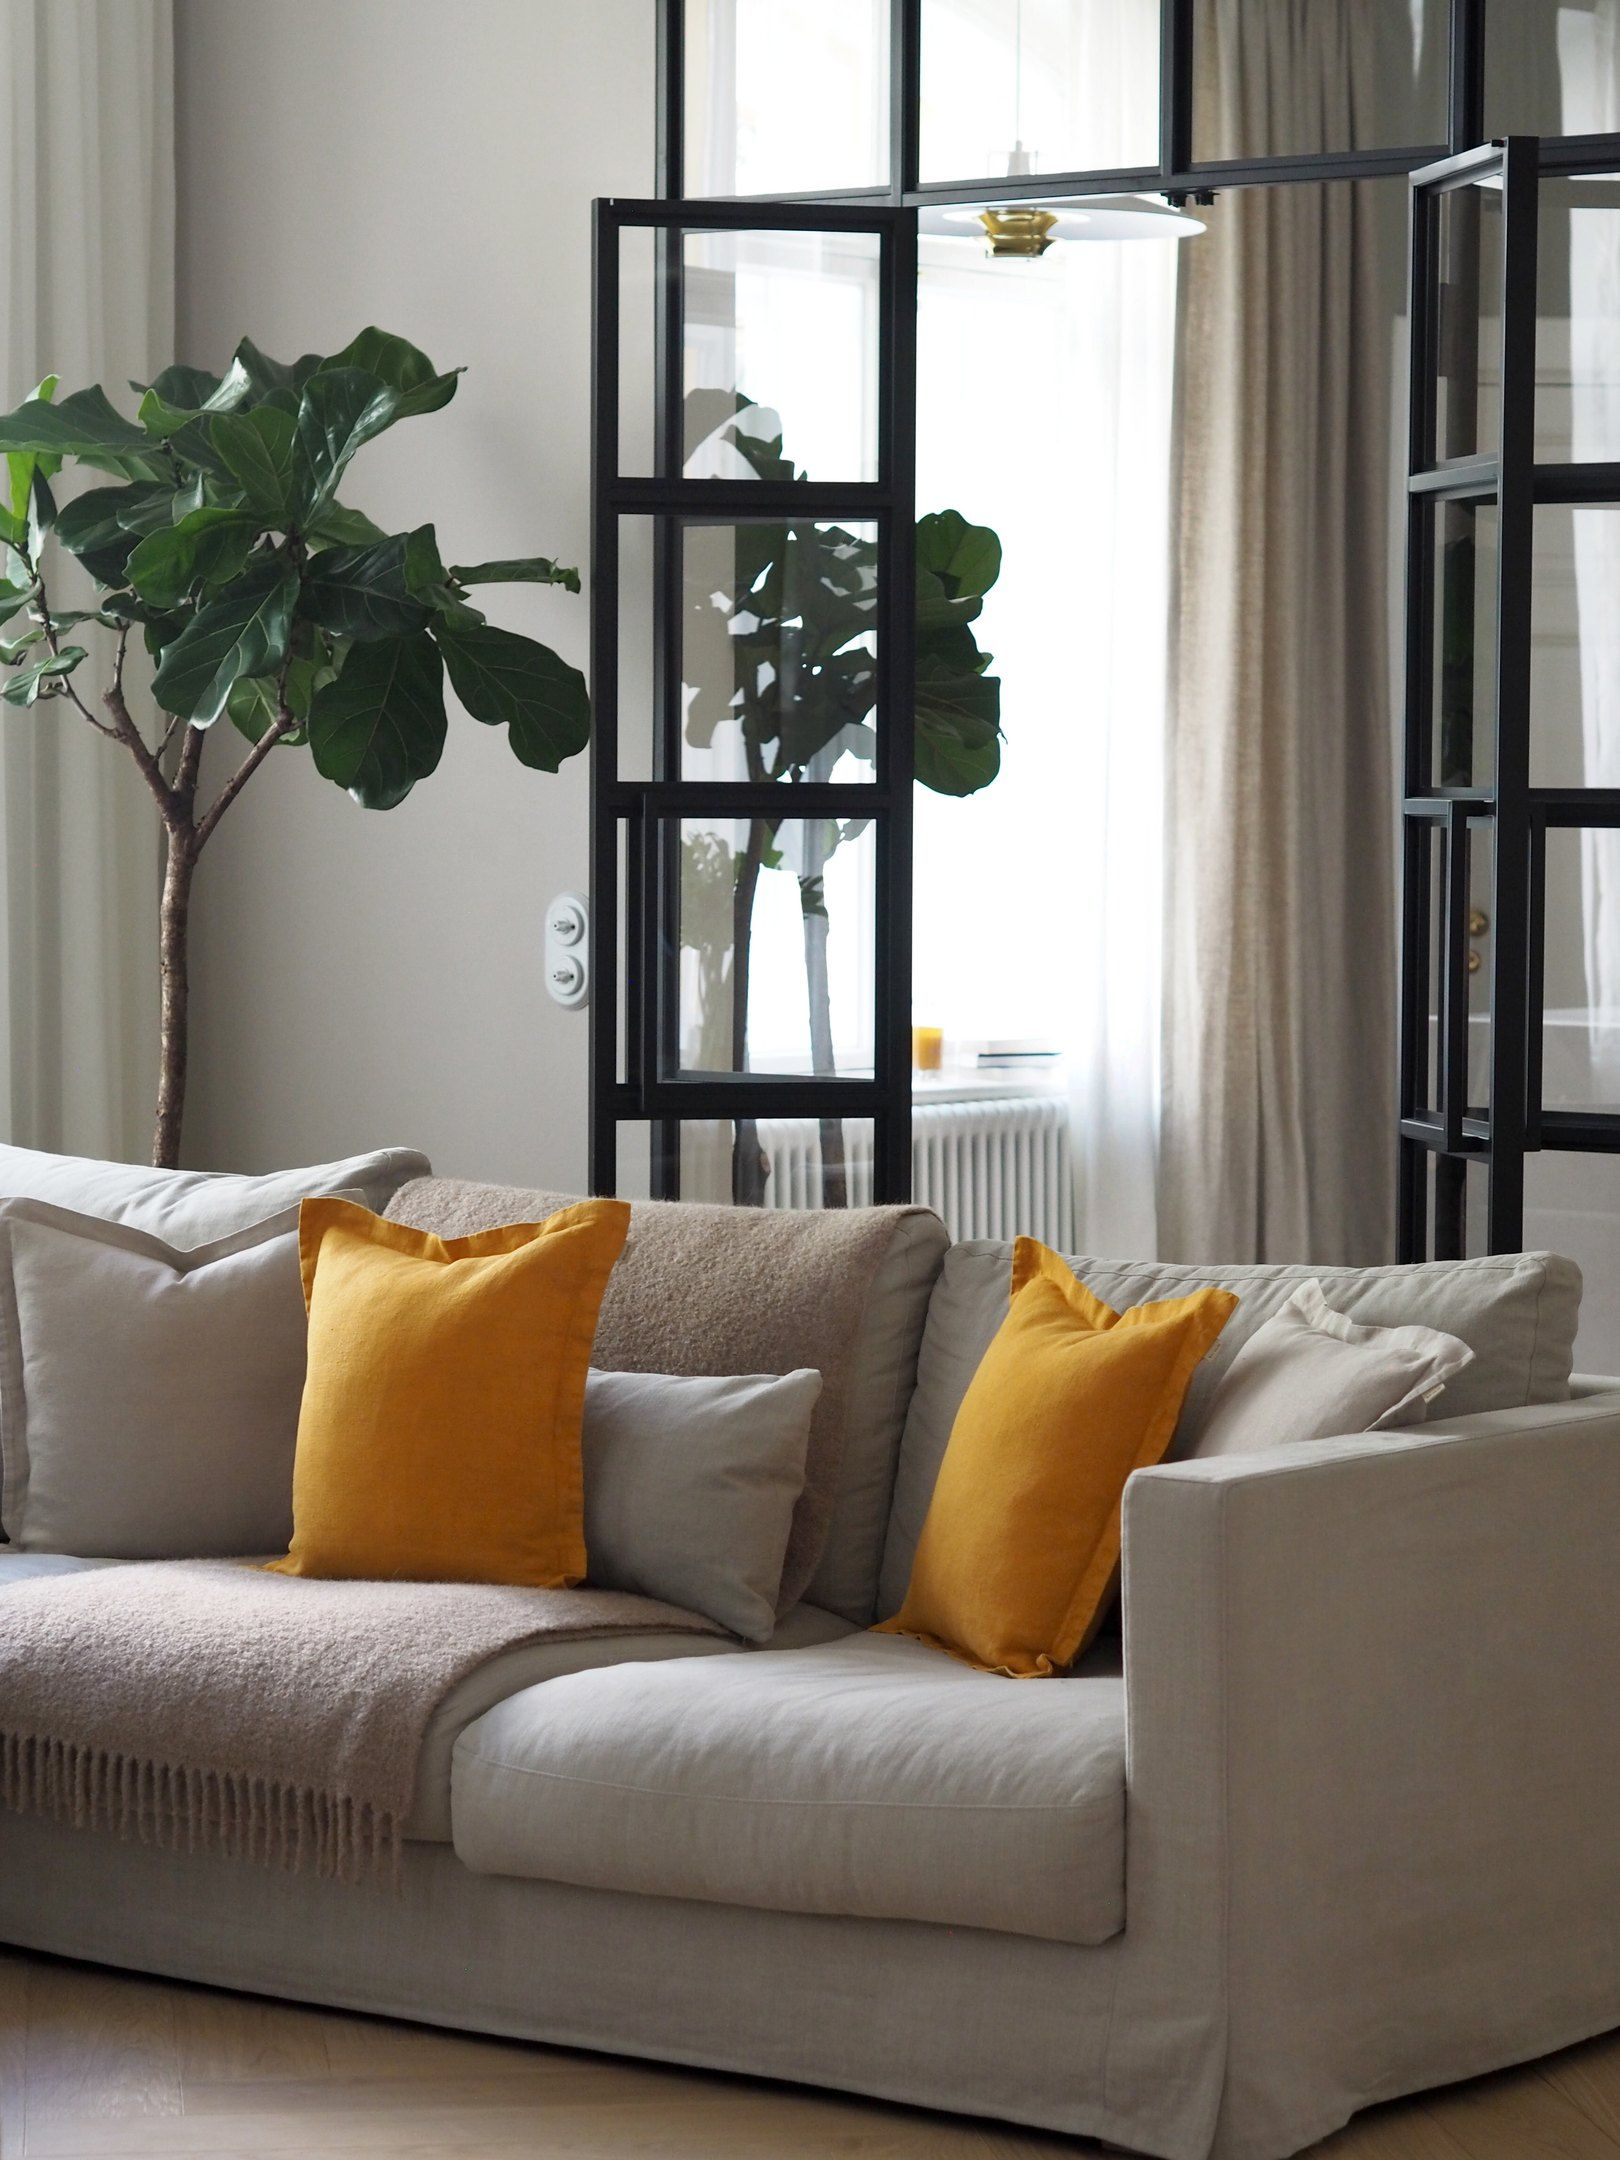 Autumn Home Interior In 2020 Home Decor Decor Living Room Spaces #sunflower #themed #living #room